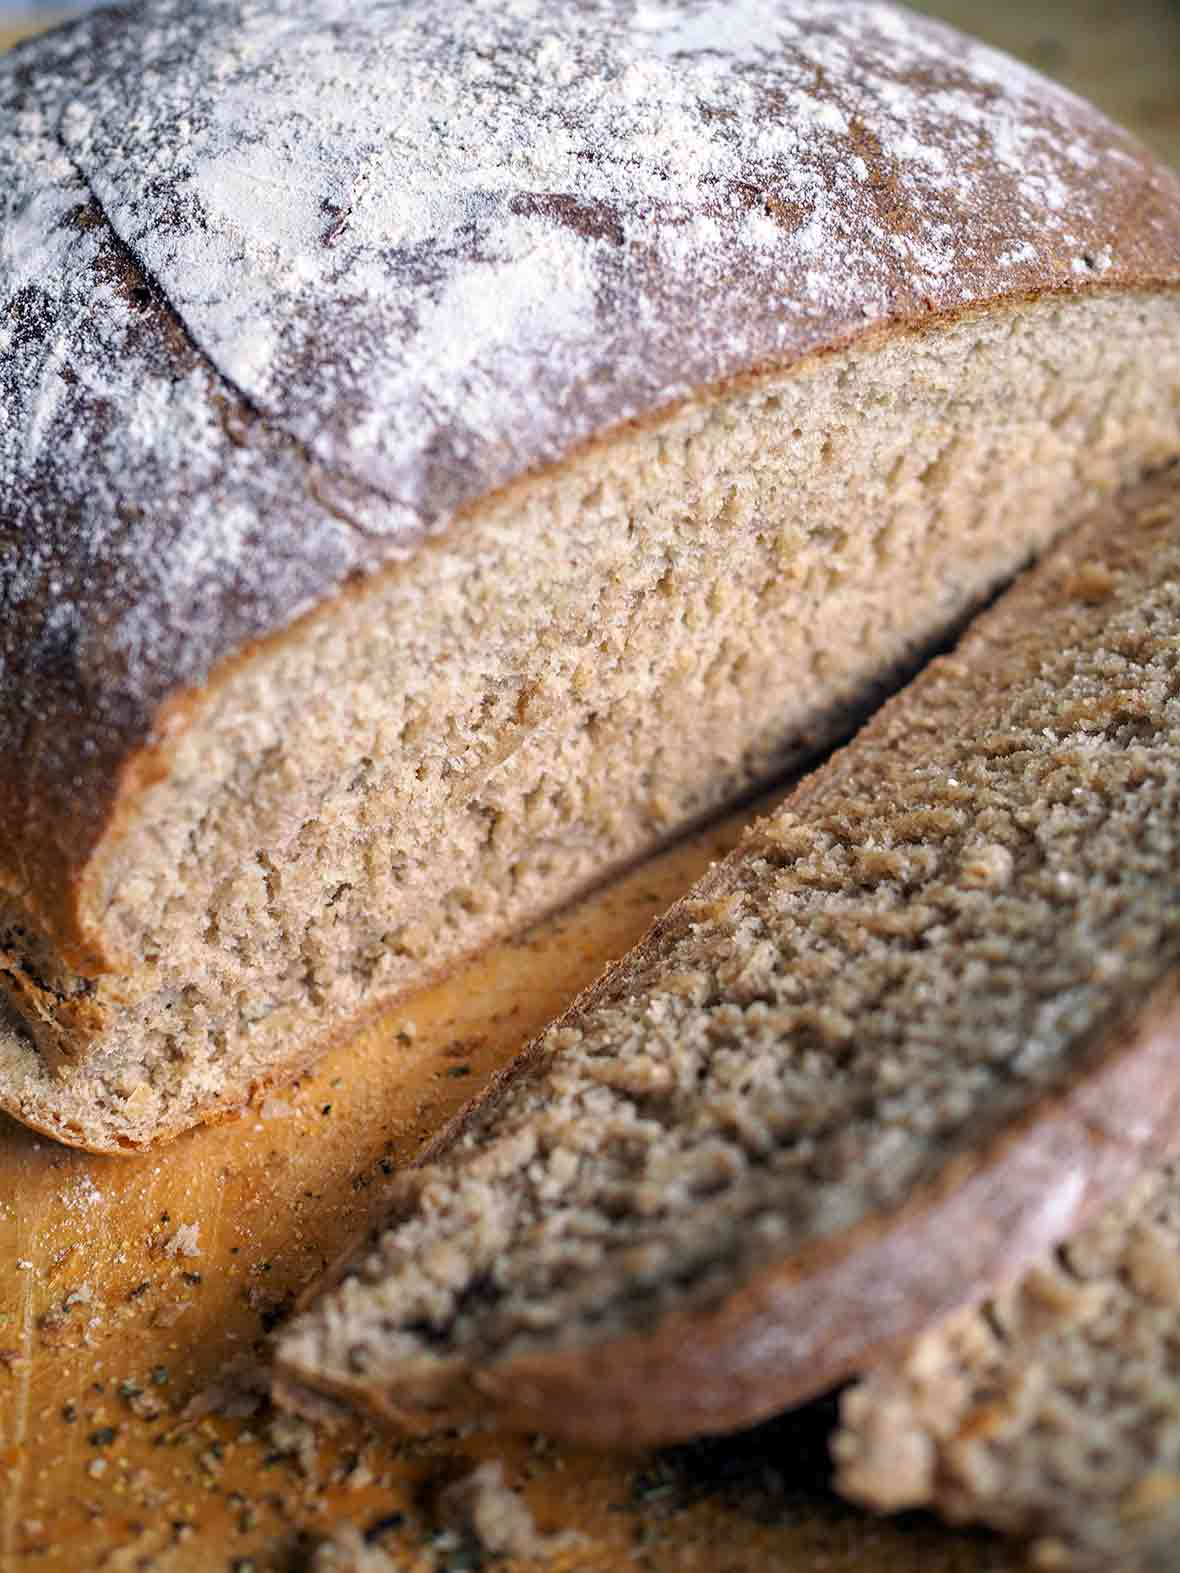 A cut-open loaf of multigrain bread made with a mix of rye, barley, oats, whole wheat flours, and molasses, and milk